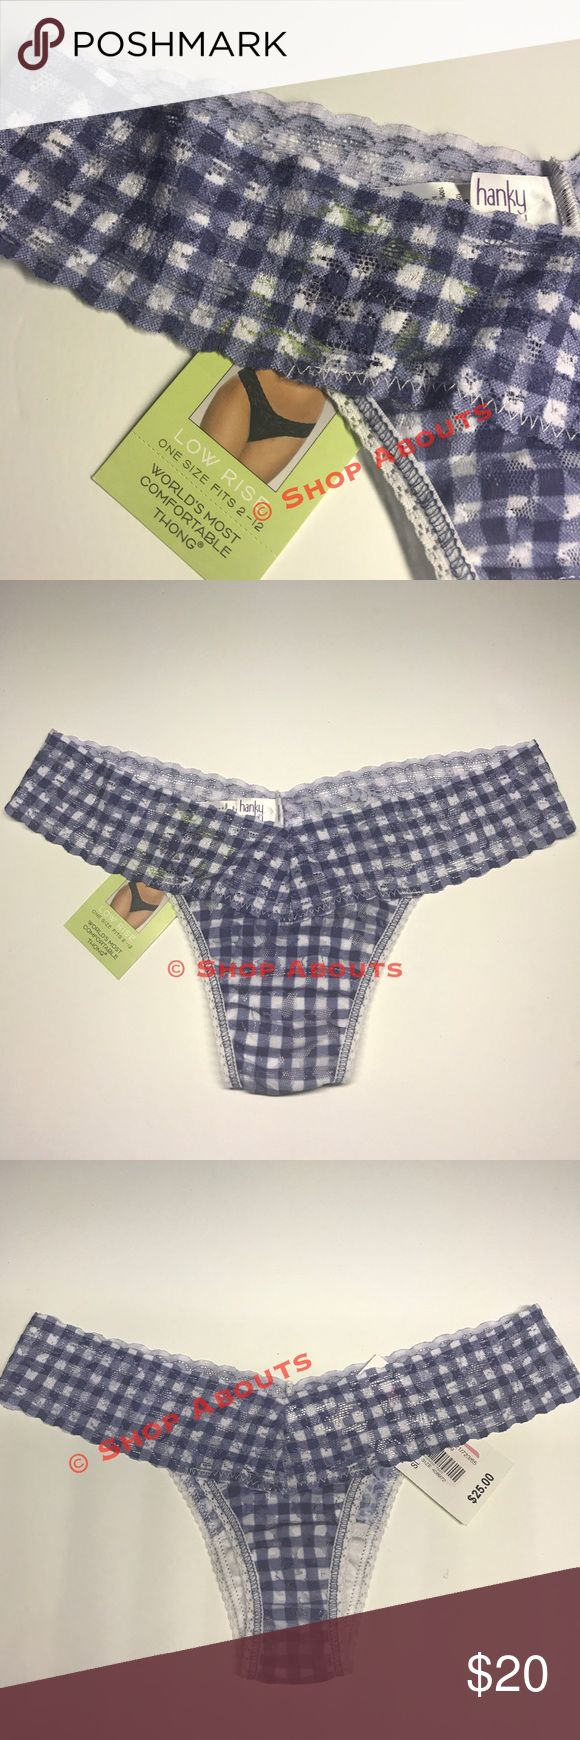 """Hanky Panky Check Please Low Rise Thong Panty 🌿 you'll love your mornings slipping into these   """"Check Please""""  modern and chic - blue on white gingham check panties by Hanky Panky,  New with Tags $24   🍃 Soft Signature Stretch Lace 🍃 Low Rise Thong  🍃 Body:  Nylon; Trim: Nylon and Spandex  🍃 hand wash  💕Happy to Posh this """"found on sale""""  panty with savings for you! Please check my closet for more great finds 💕 Hanky Panky Intimates & Sleepwear Panties"""